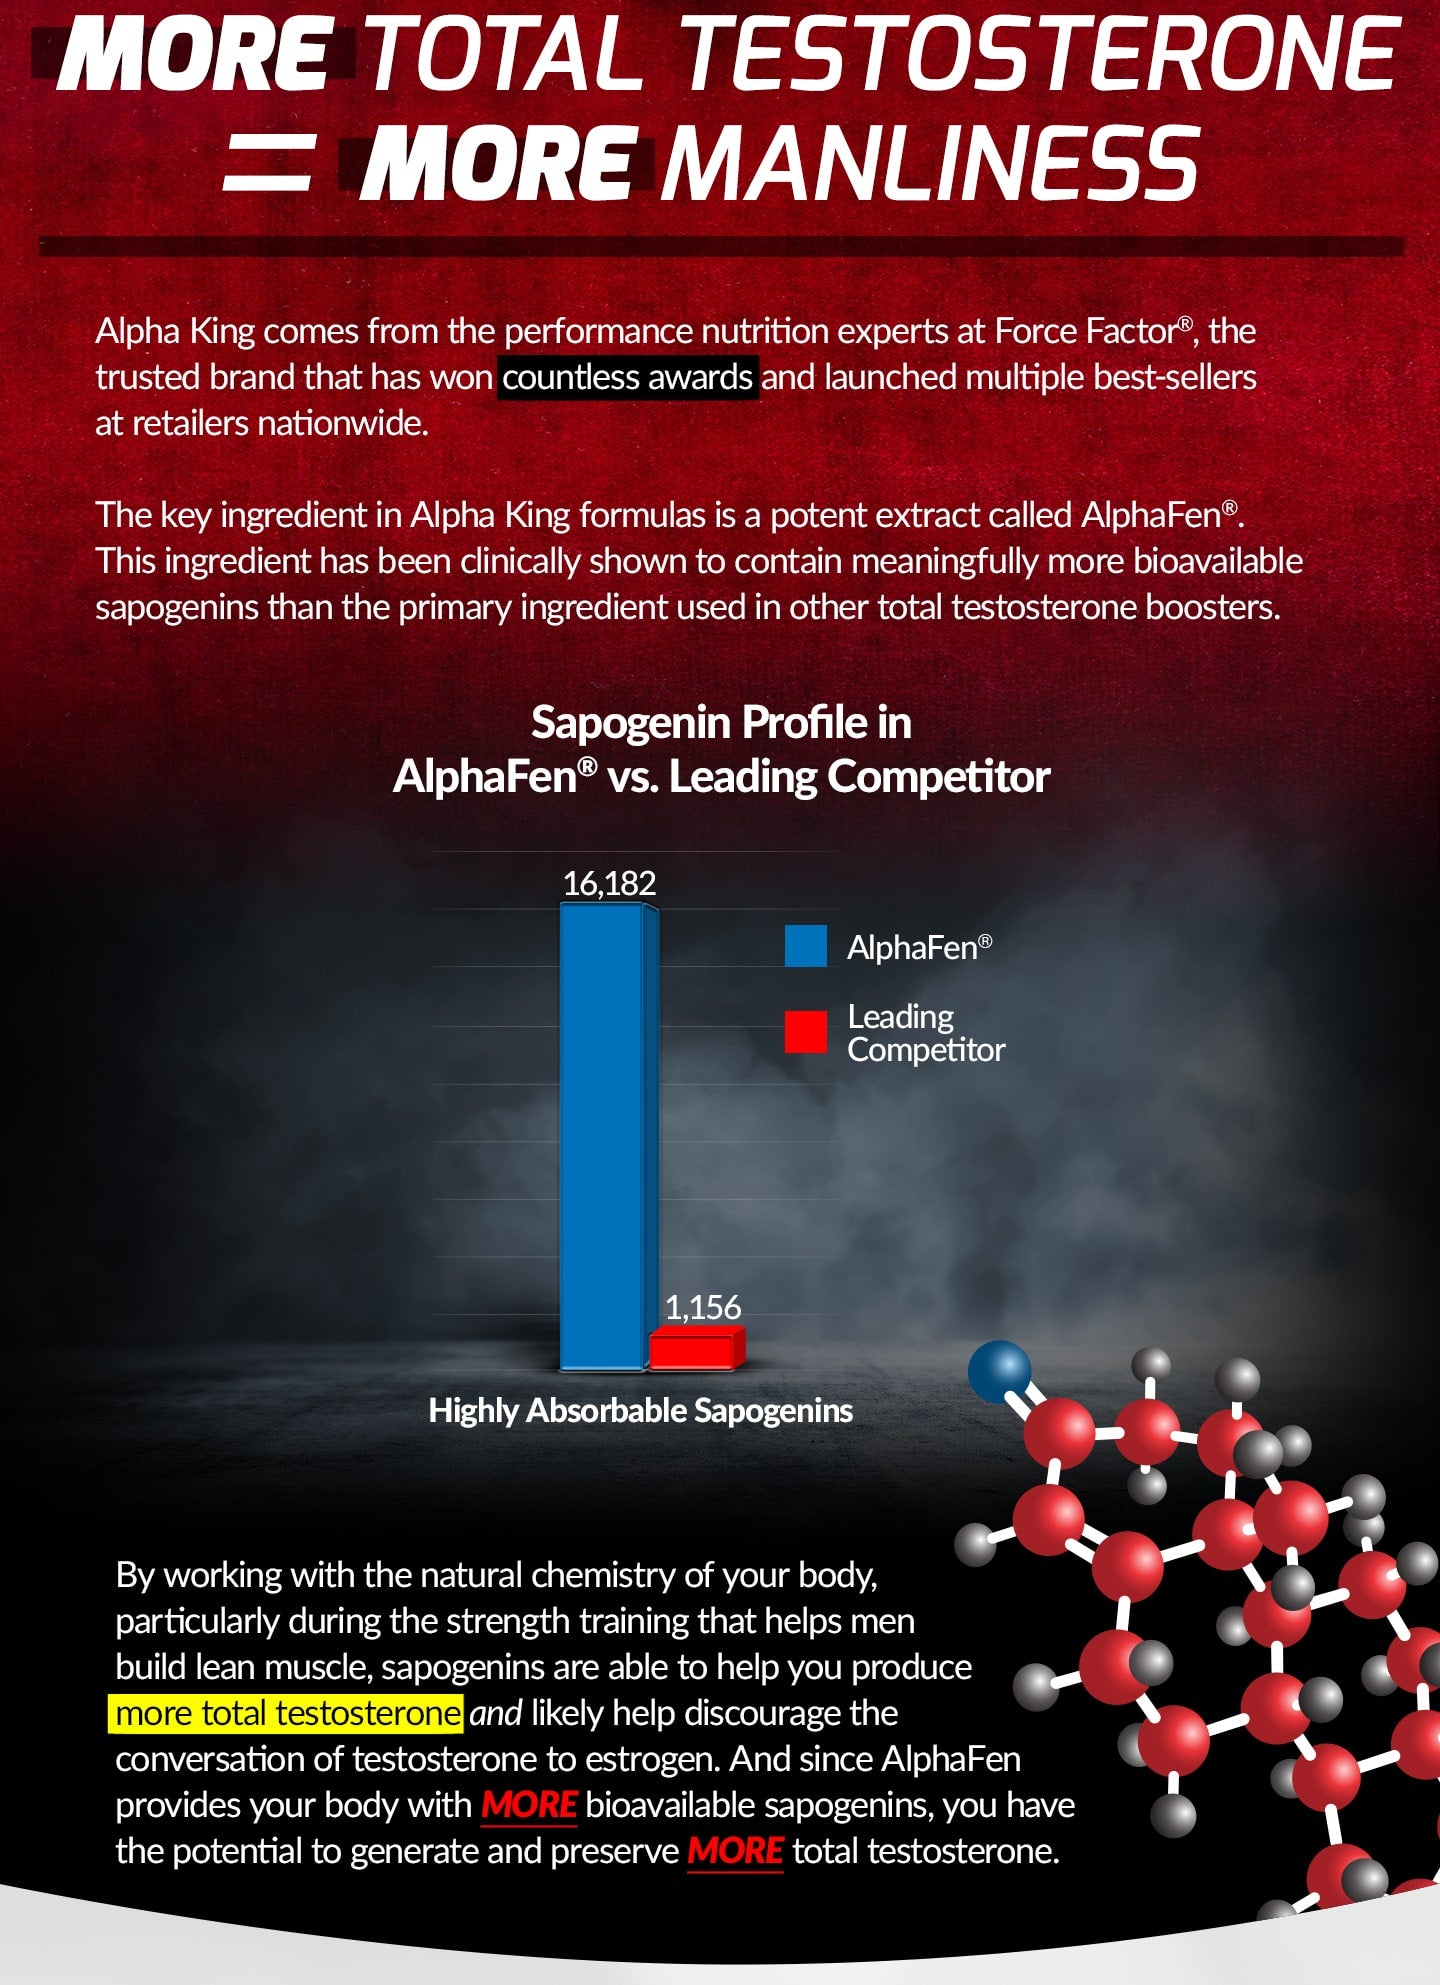 MORE TOTAL TESTOSTERONE FOR MORE MANLINESS. Alpha King comes from the performance nutrition experts at Force Factor®, the trusted brand that has won countless awards and launched multiple best-sellers at retailers nationwide. The key ingredient in Alpha King formulas is a potent extract called AlphaFen®. This ingredient has been clinically shown to contain meaningfully more bioavailable sapogenins than the primary ingredient used in other total testosterone boosters. By working with the natural chemistry of your body, particularly during the strength training that helps men build lean muscle, sapogenins are able to help you produce more total testosterone and likely help discourage the conversation of testosterone to estrogen. And since AlphaFen provides your body with MORE bioavailable sapogenins, you have the potential to generate and preserve MORE total testosterone.